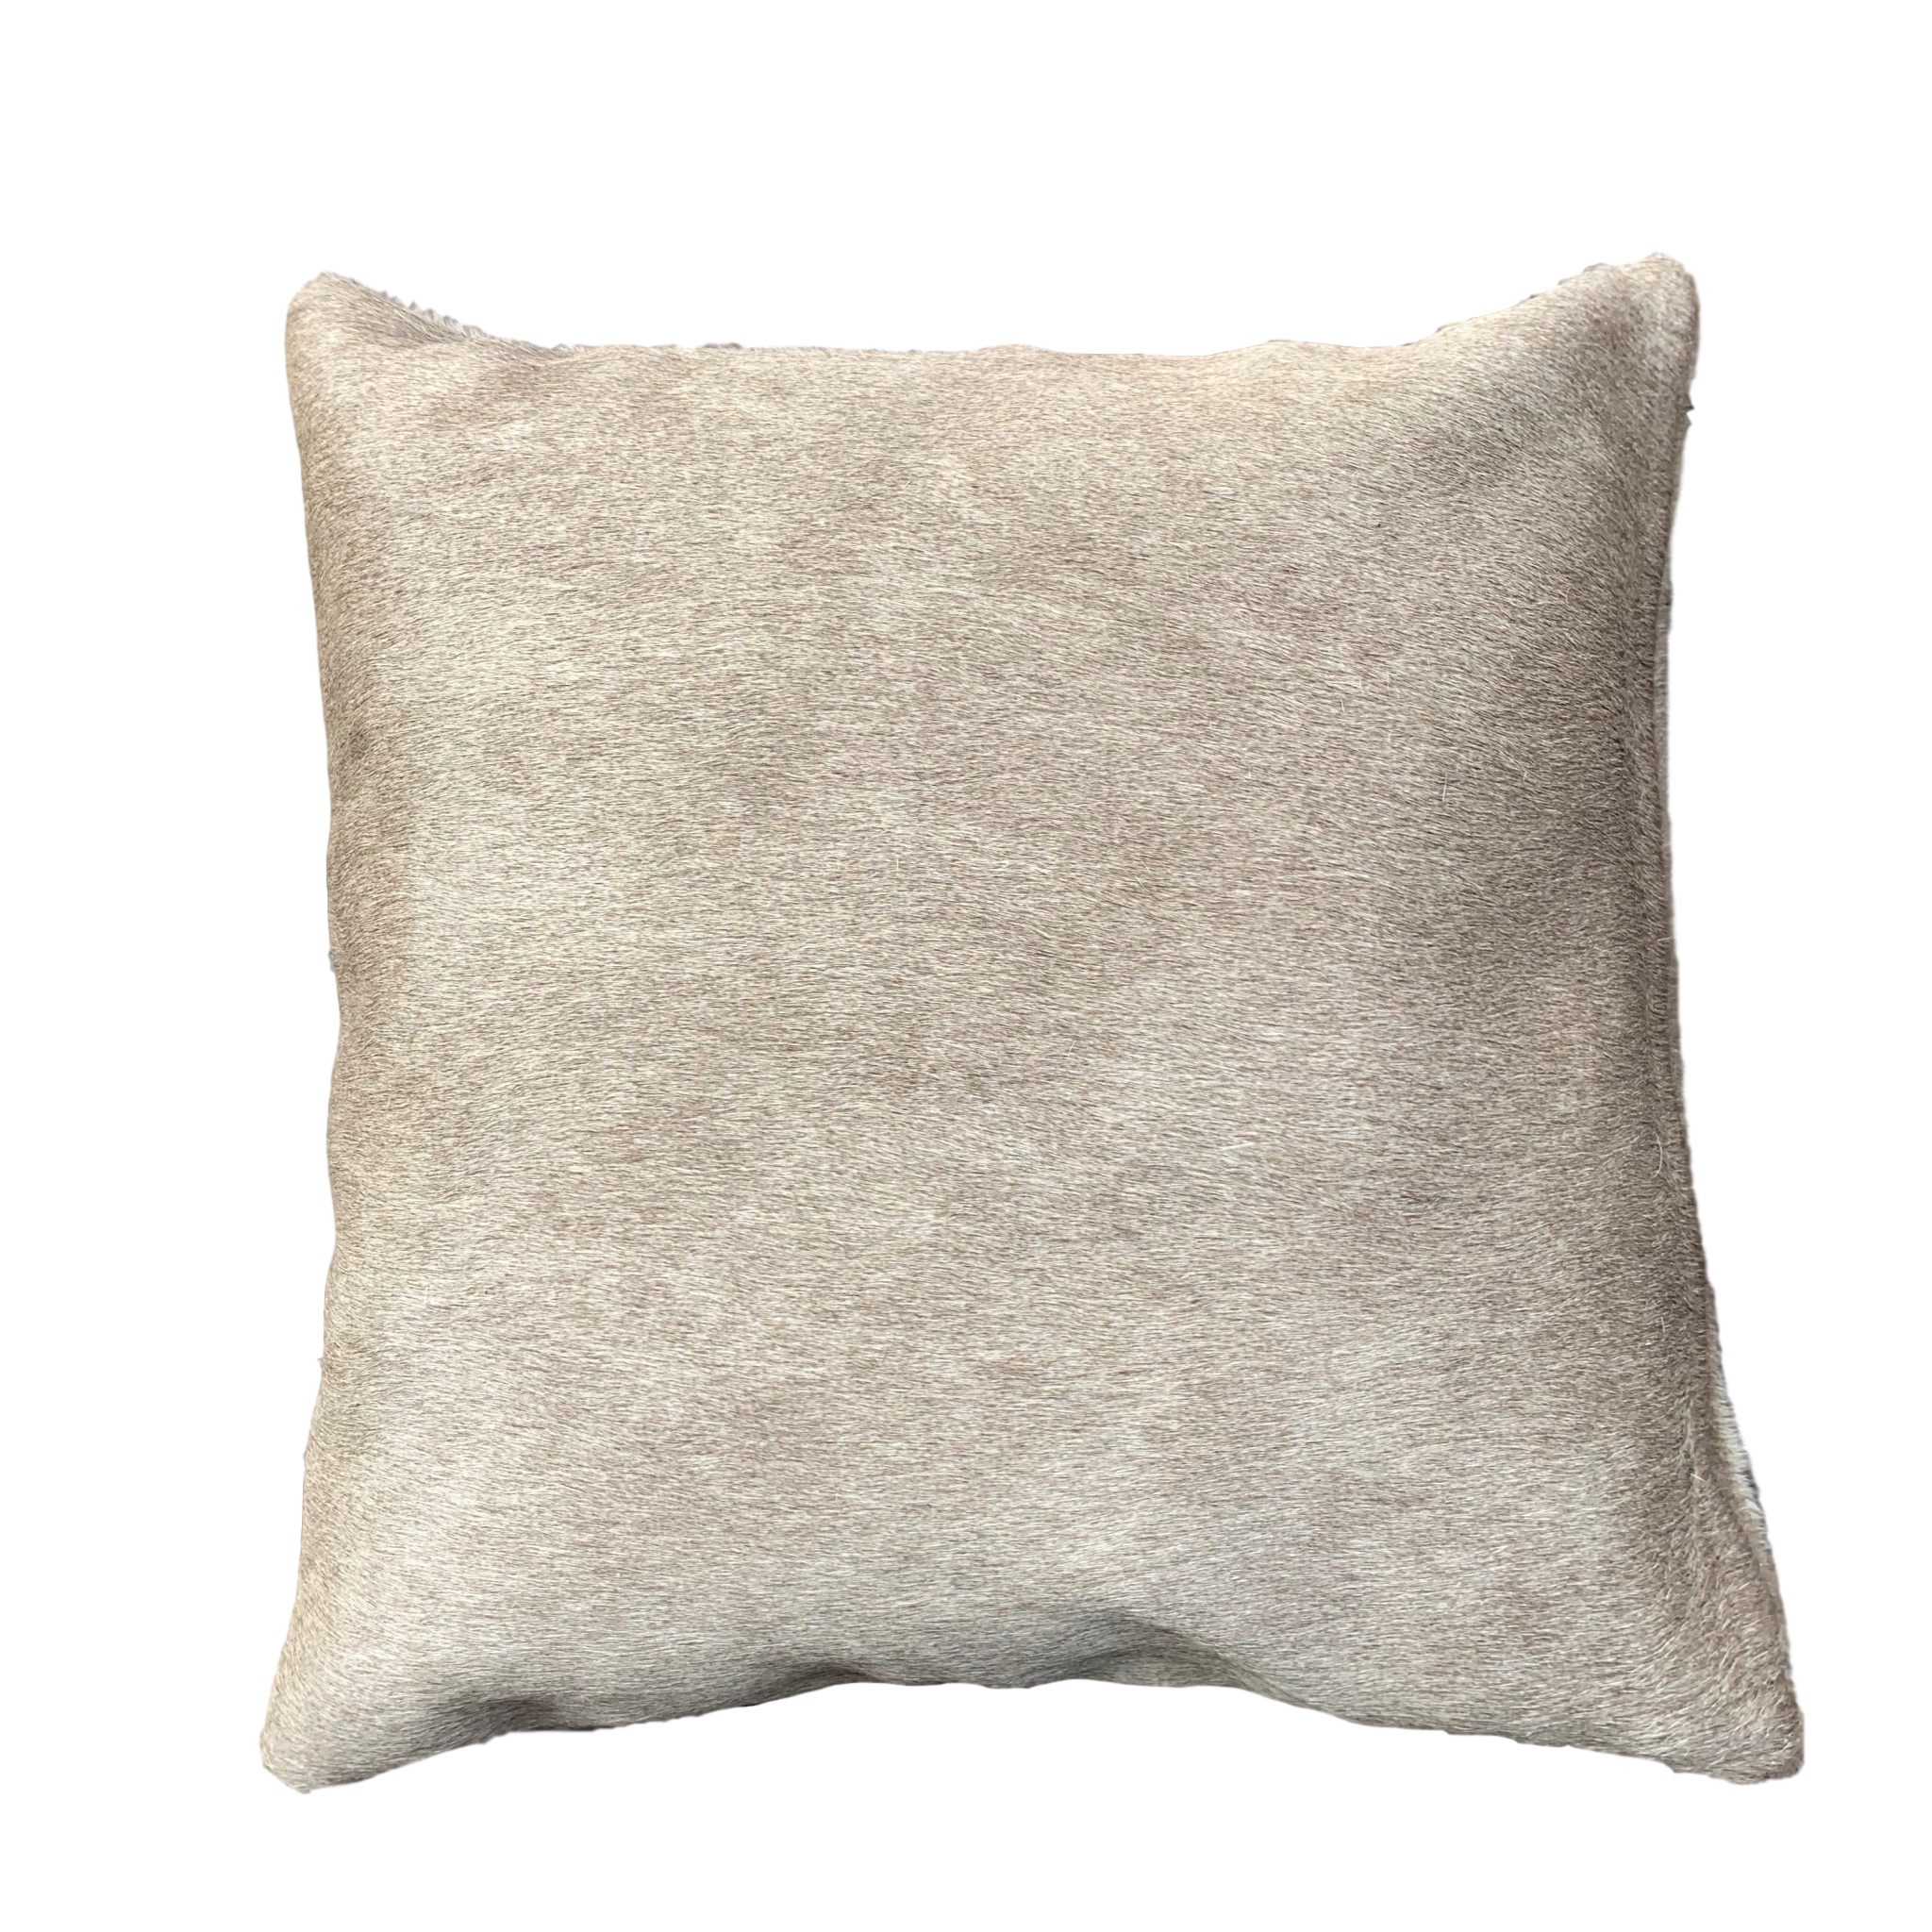 champaign cowhide cushion